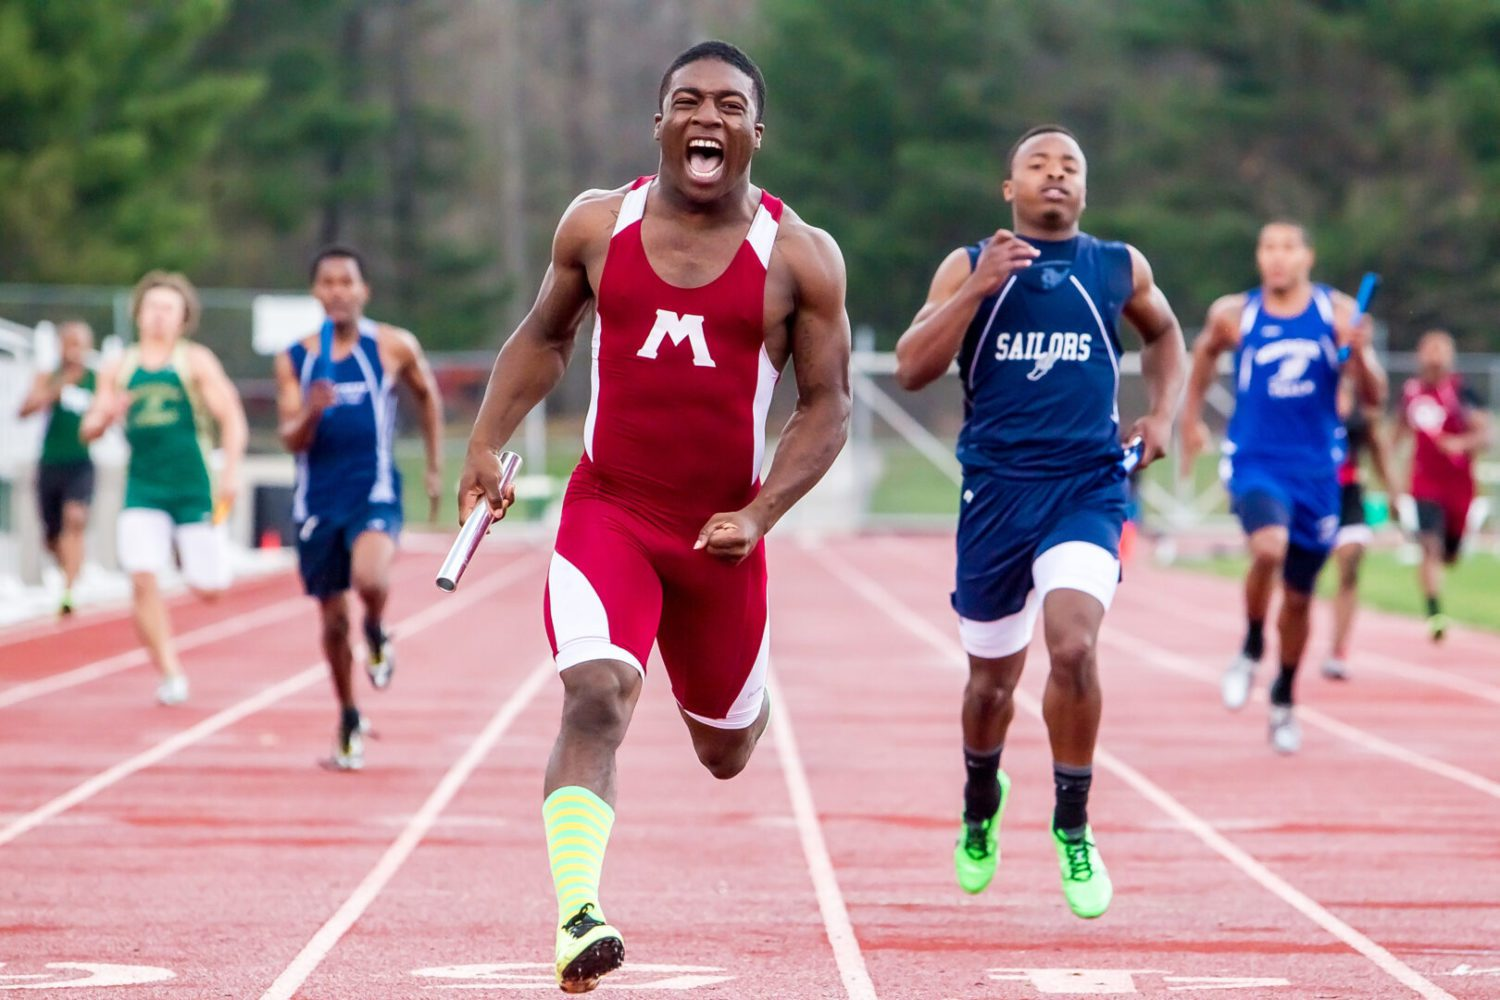 Greater Muskegon Athletic Association boys track meet results